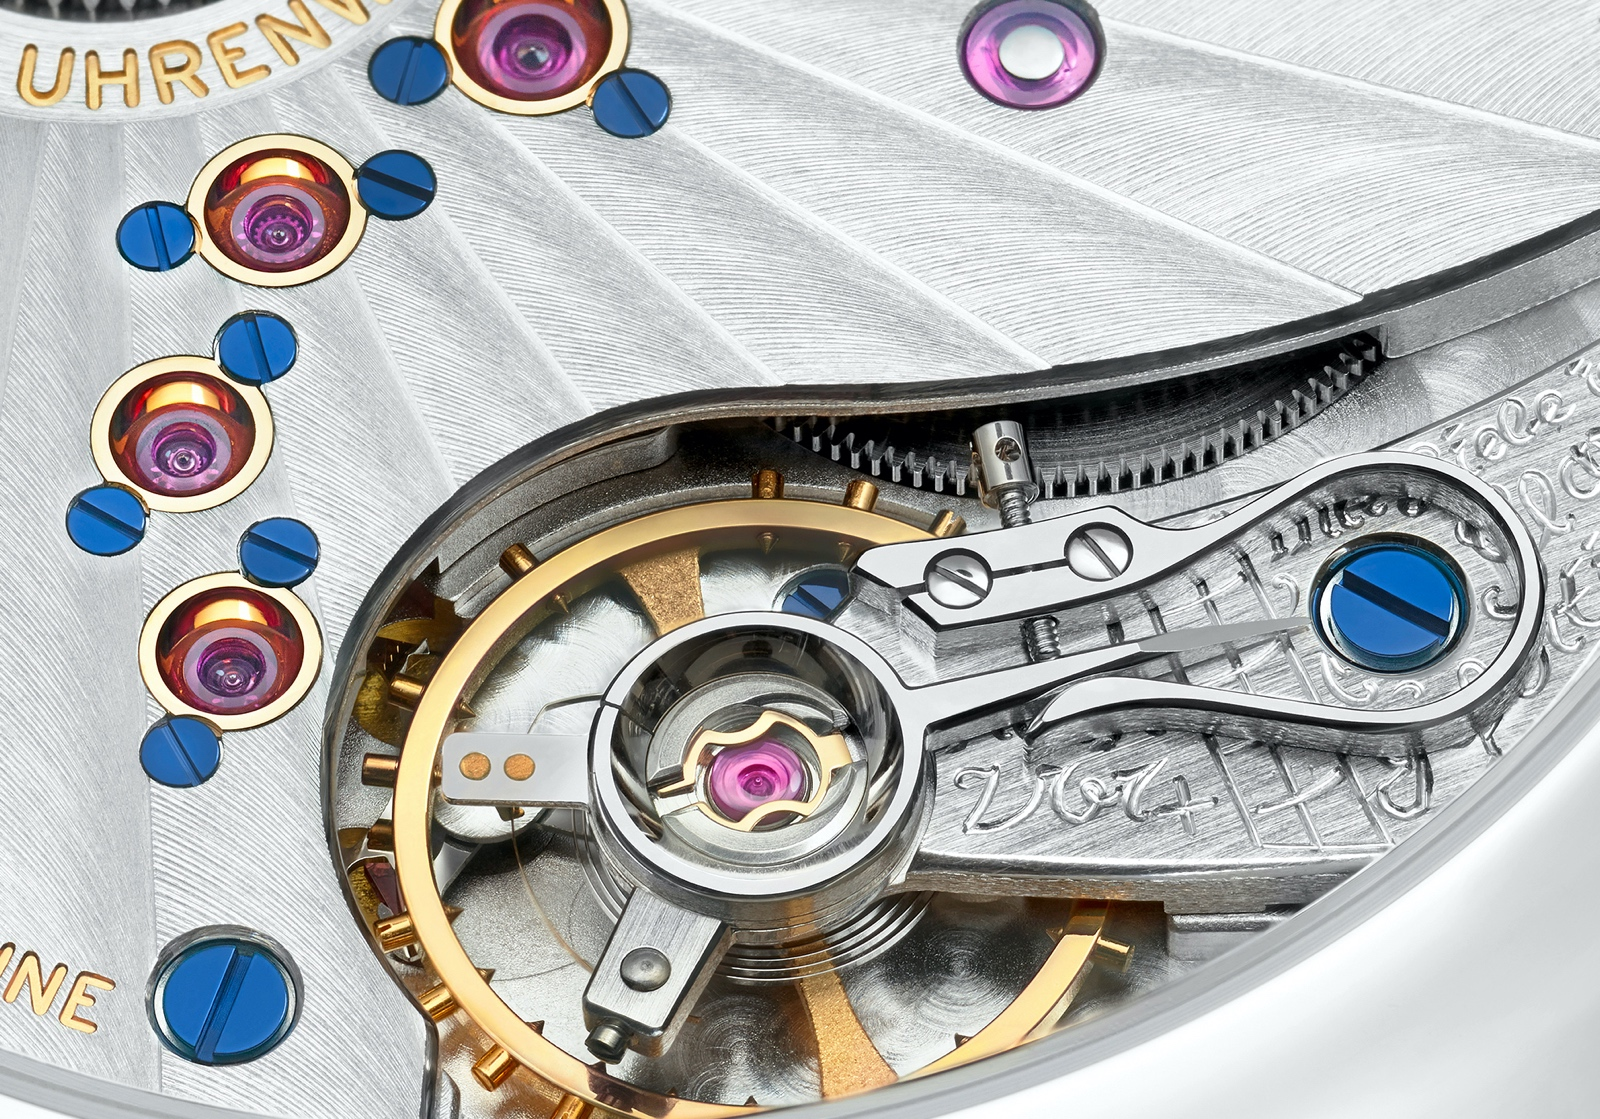 Nomos Lambda 175 Years Watchmaking Glashütte - calibre DUW 1001 detalle